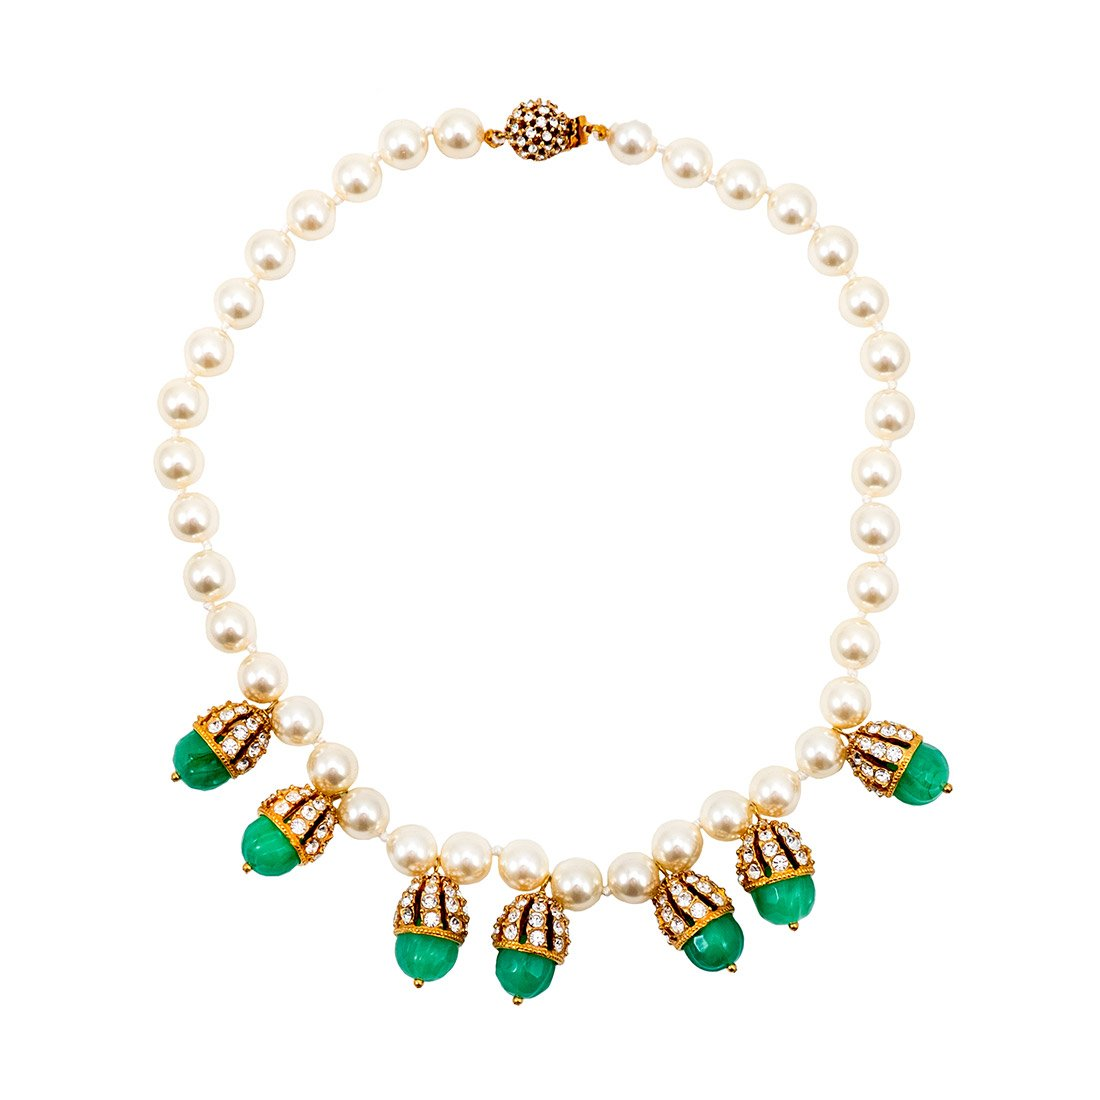 Pearl & Encrusted Green Stone Necklace